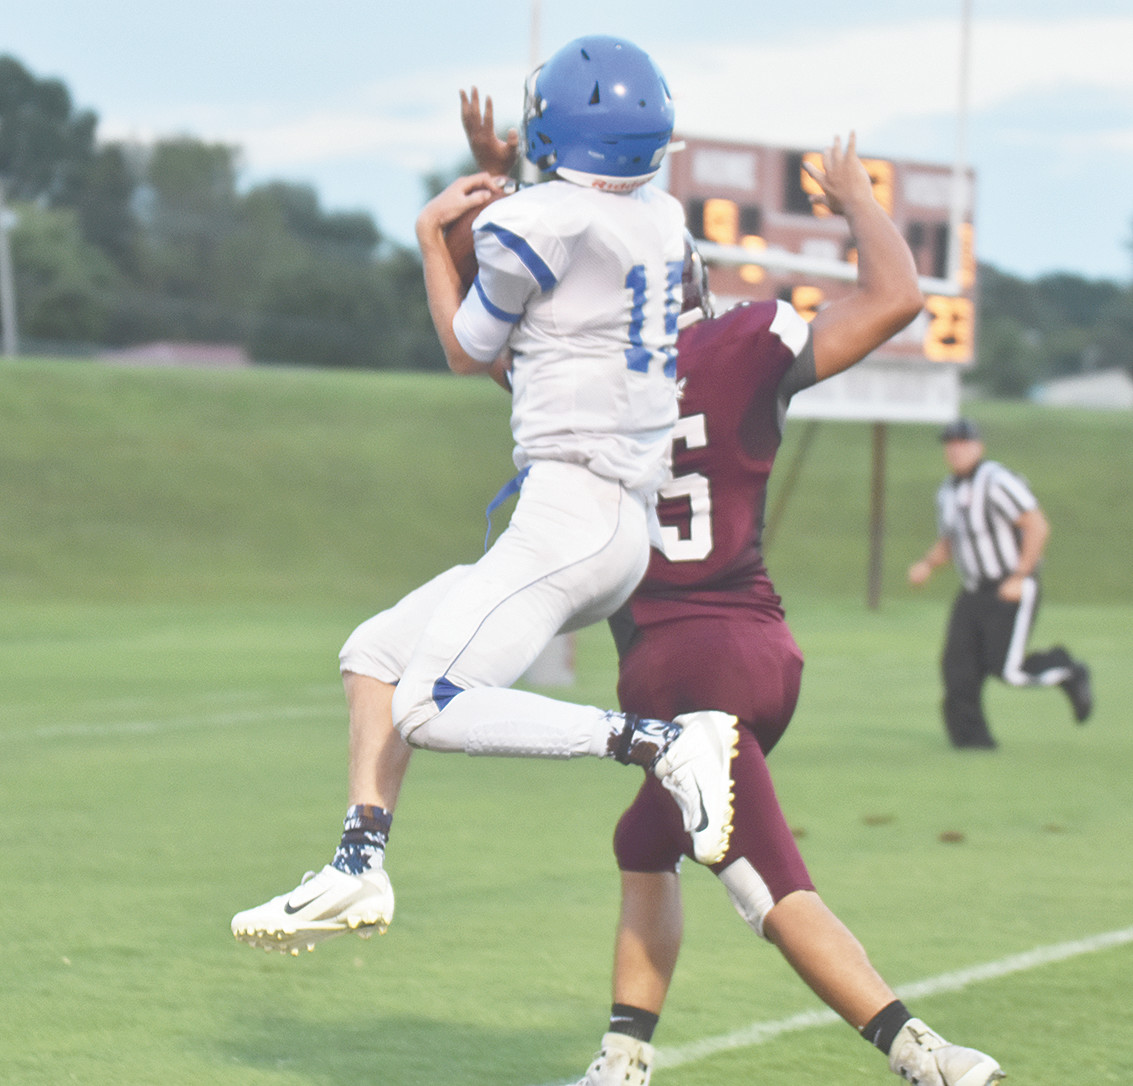 Tiger Zane Mebane makes a catch as he crosses the goal line in midair to put Central on the board.